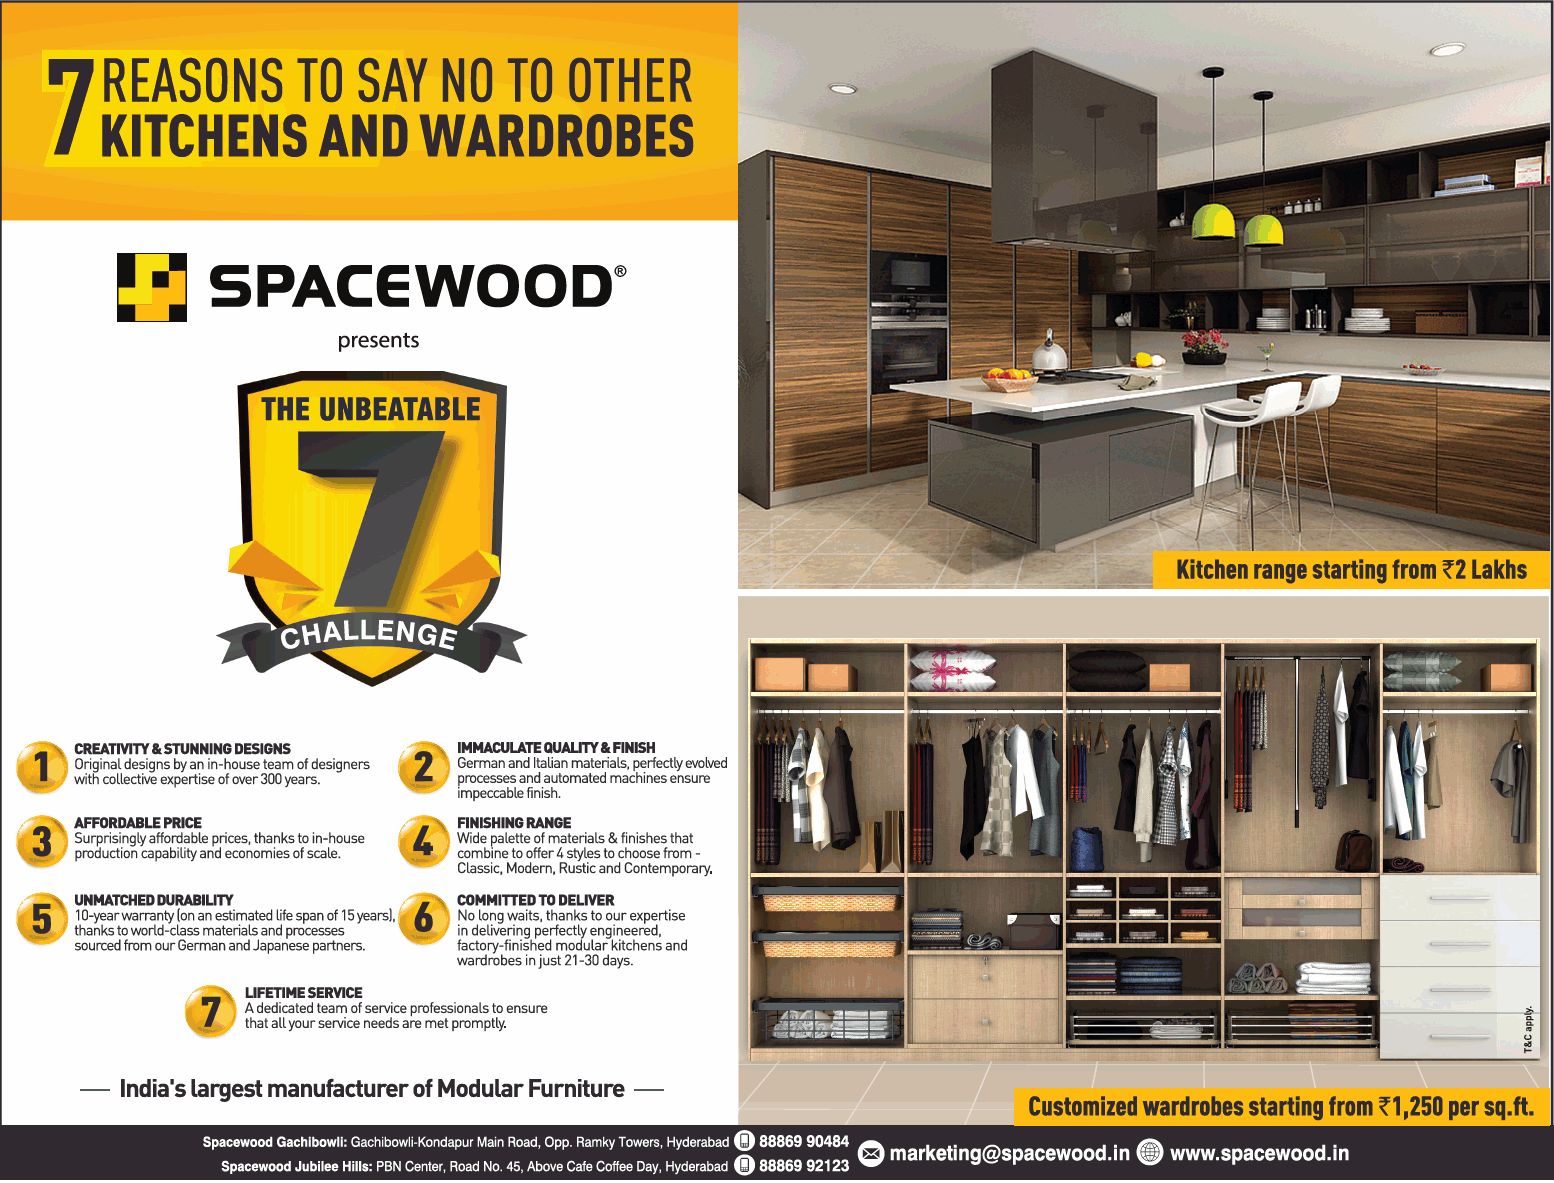 Spacewood 7 Reasons To Say No To Other Kitchens And Wardrobes Ad